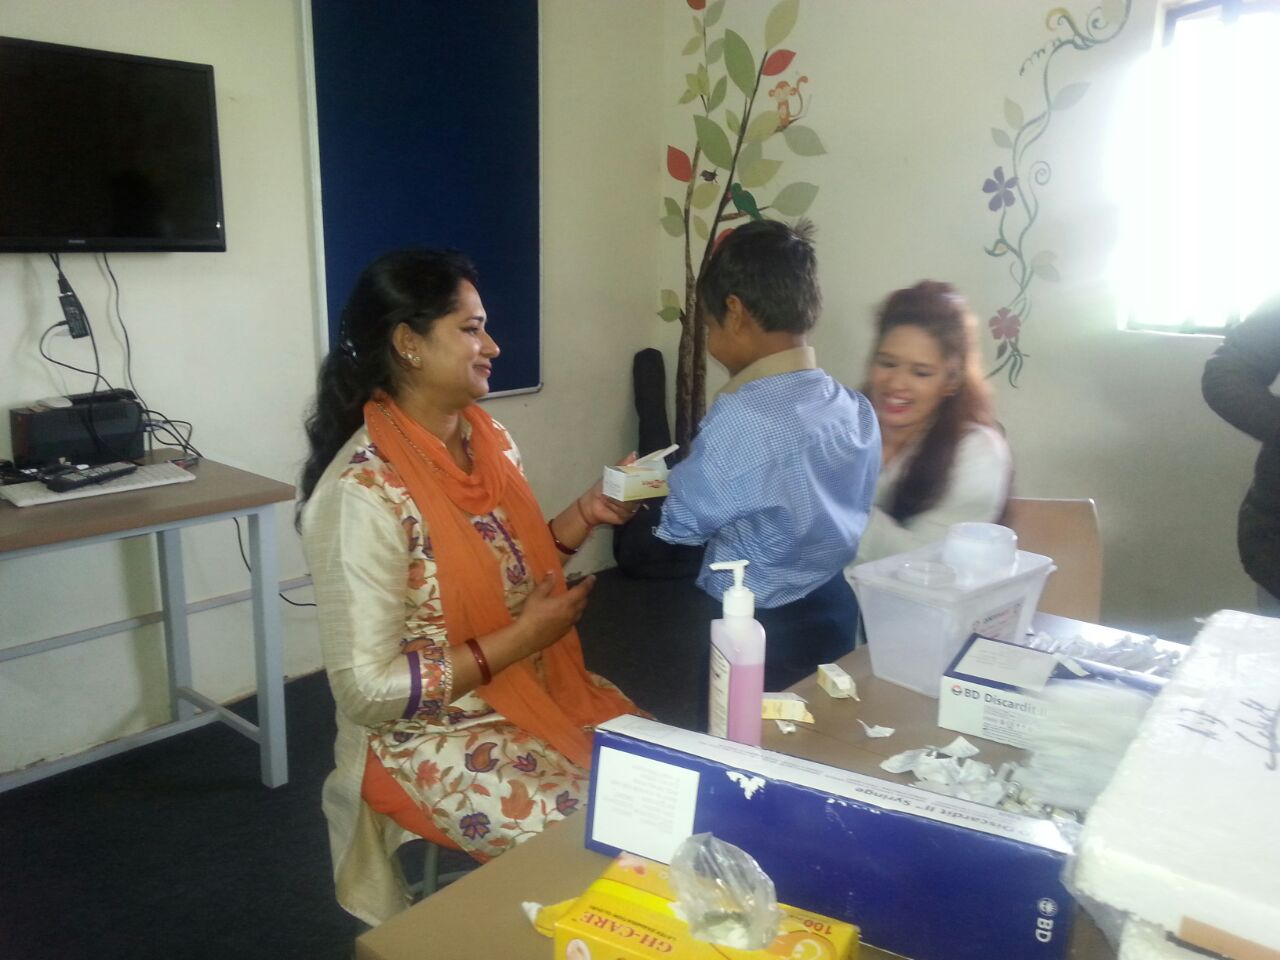 MMR vaccination